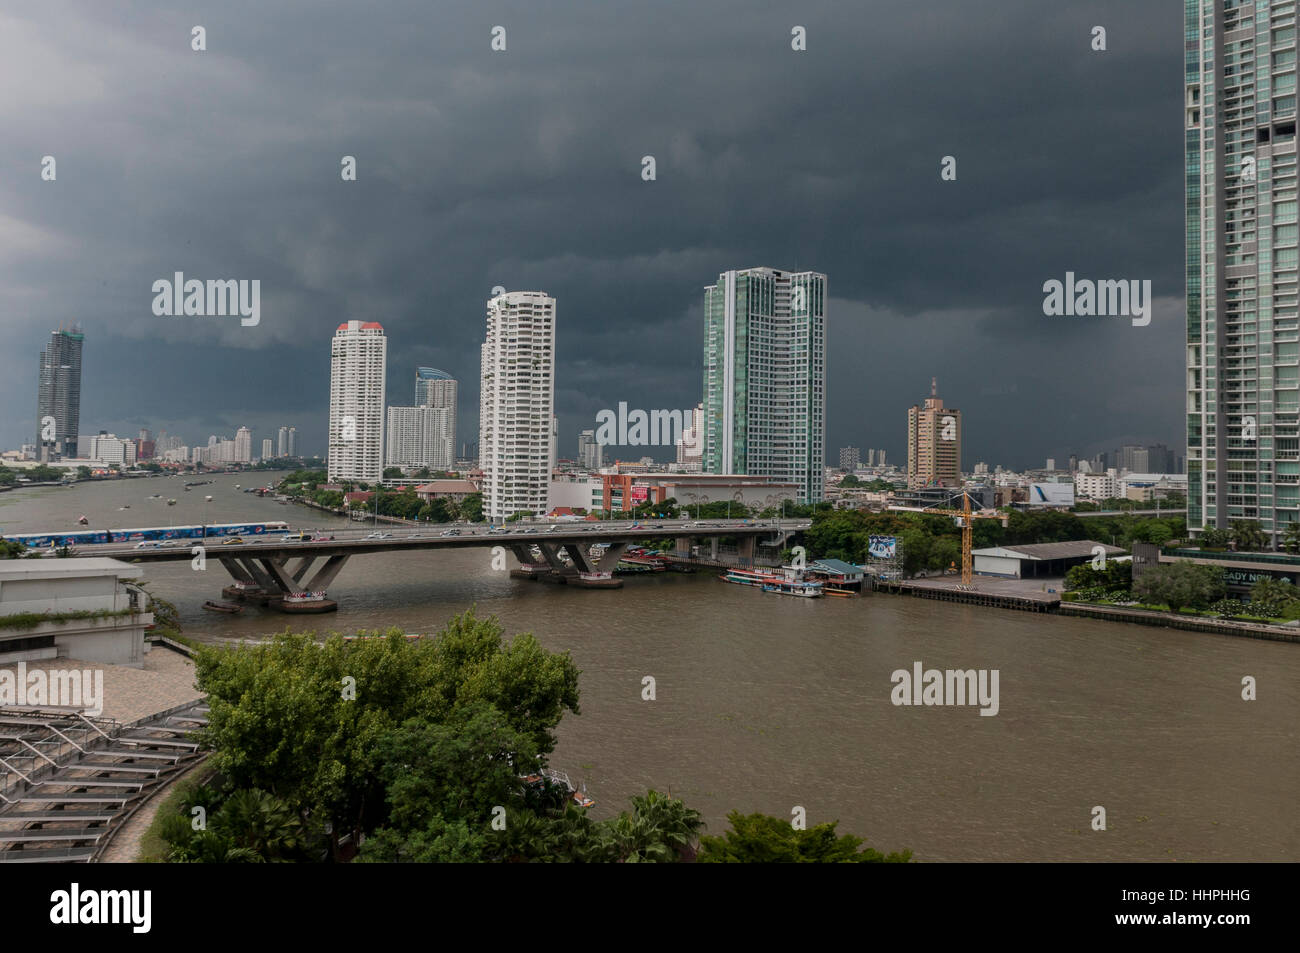 The black sky is a precursor to a heavy rain storm during monsoon season in Bangkok, Thailand. - Stock Image